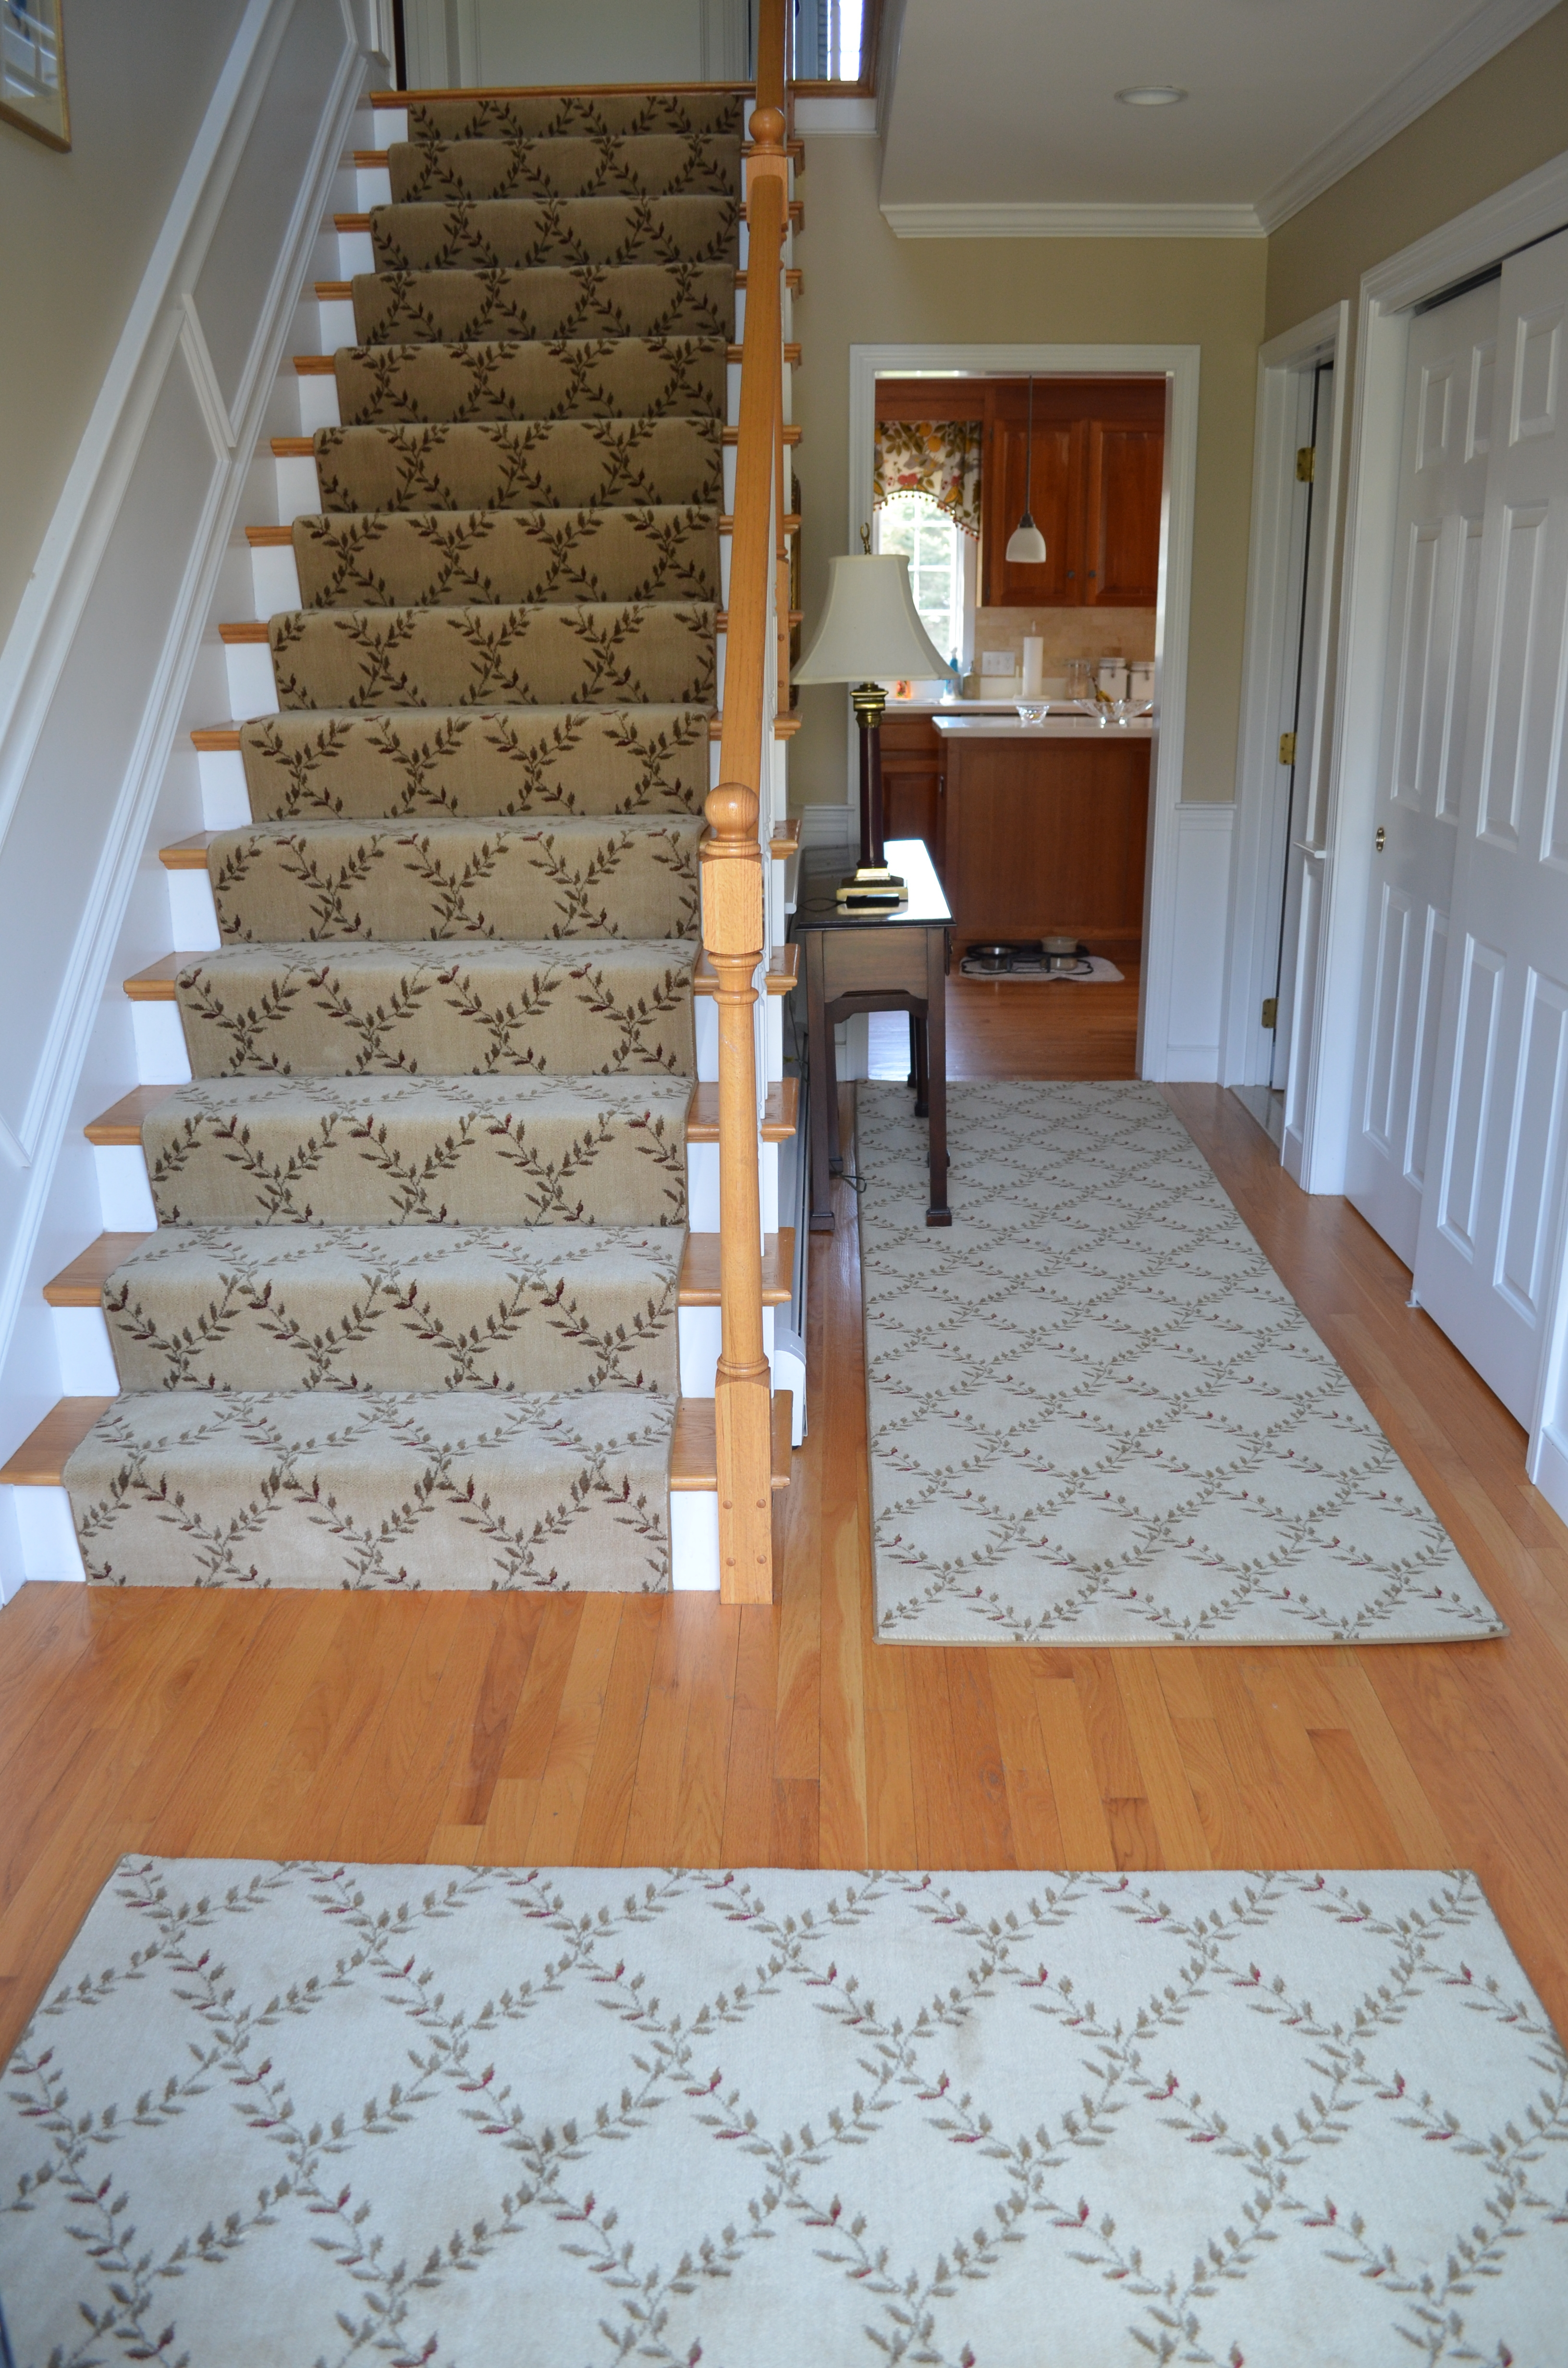 Interior Cream Carpet Hallway Combined With Gray And White Wall Regarding Carpet Runners Hallways (View 18 of 20)